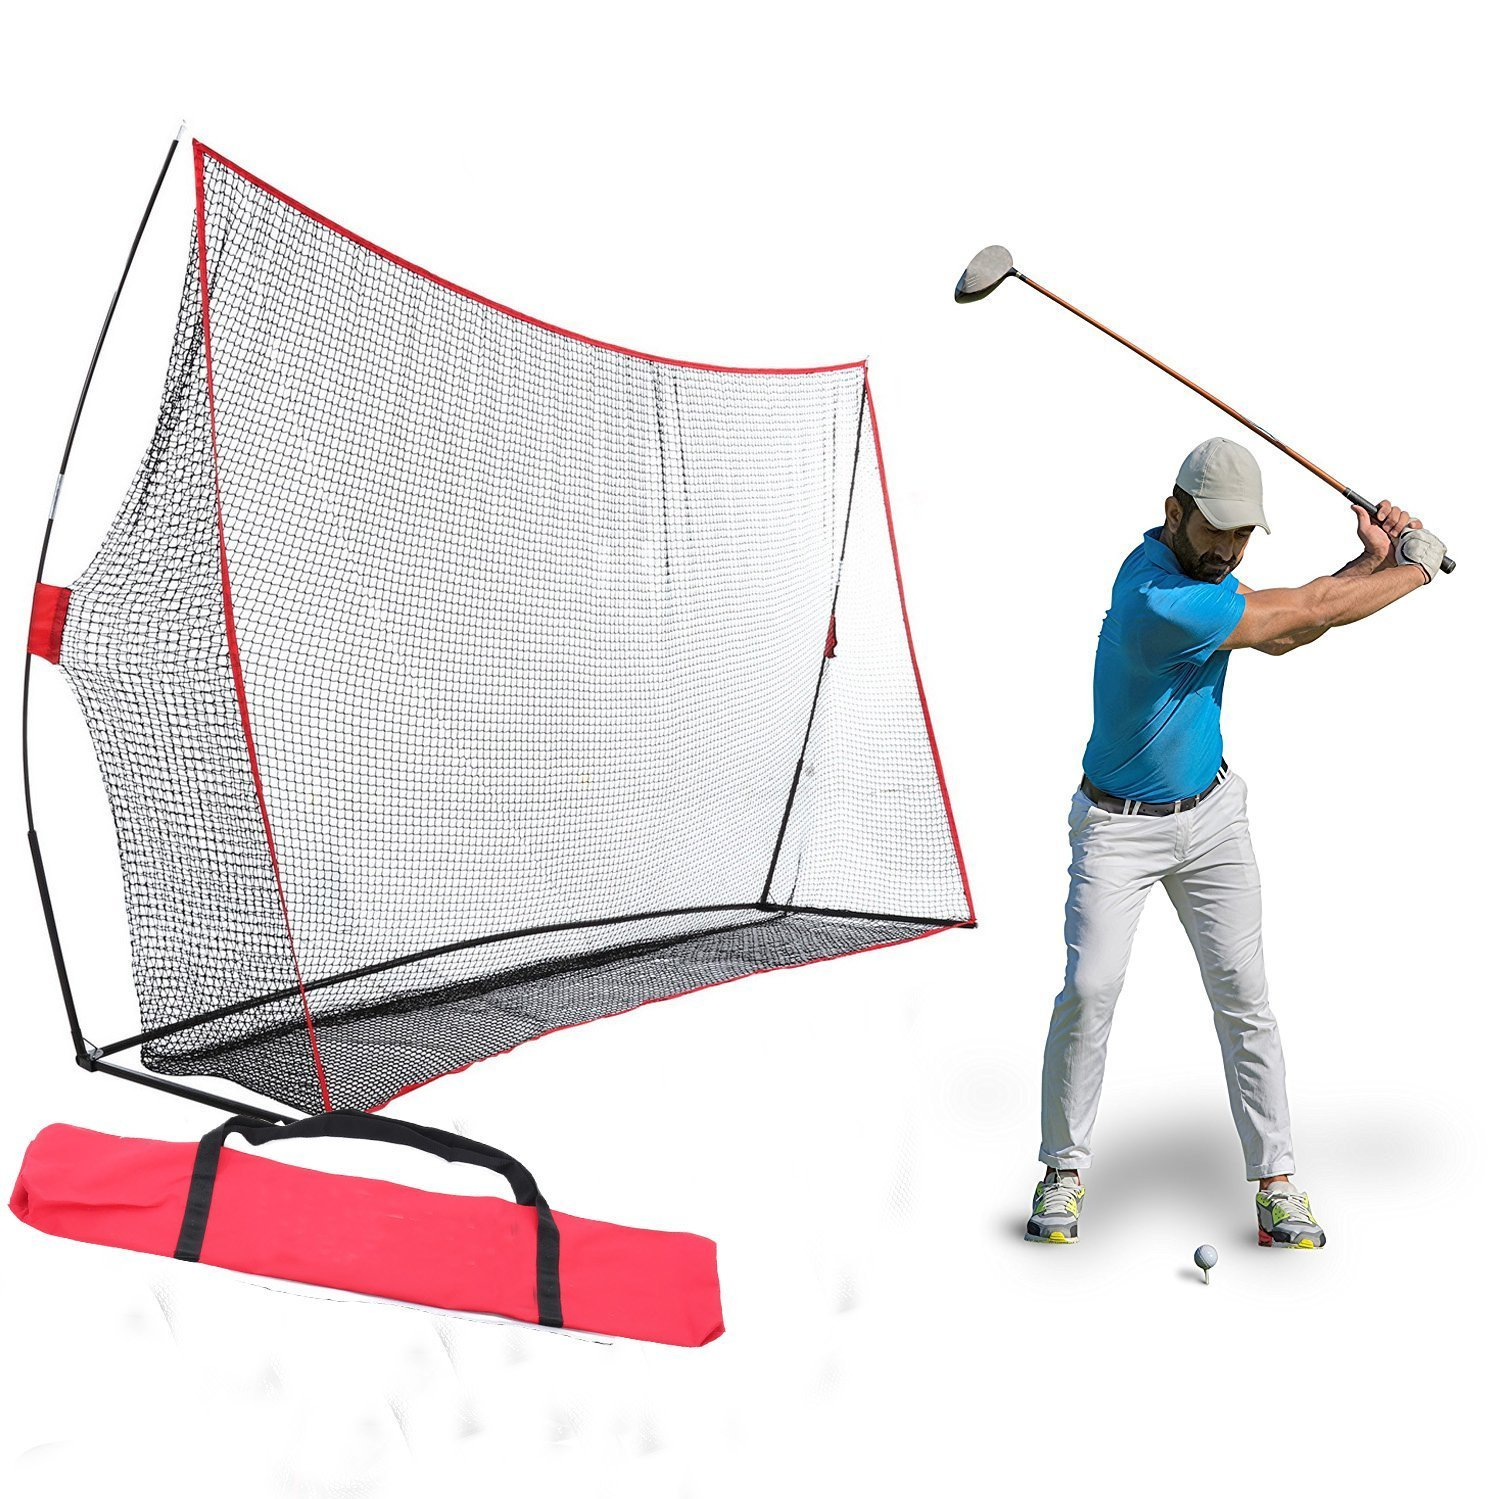 Kaluo Golf Practice Training Net with Return Bow Frame Indoor Outdoor -10 x 7 x 3ft With Carrying Bag(US Stock)